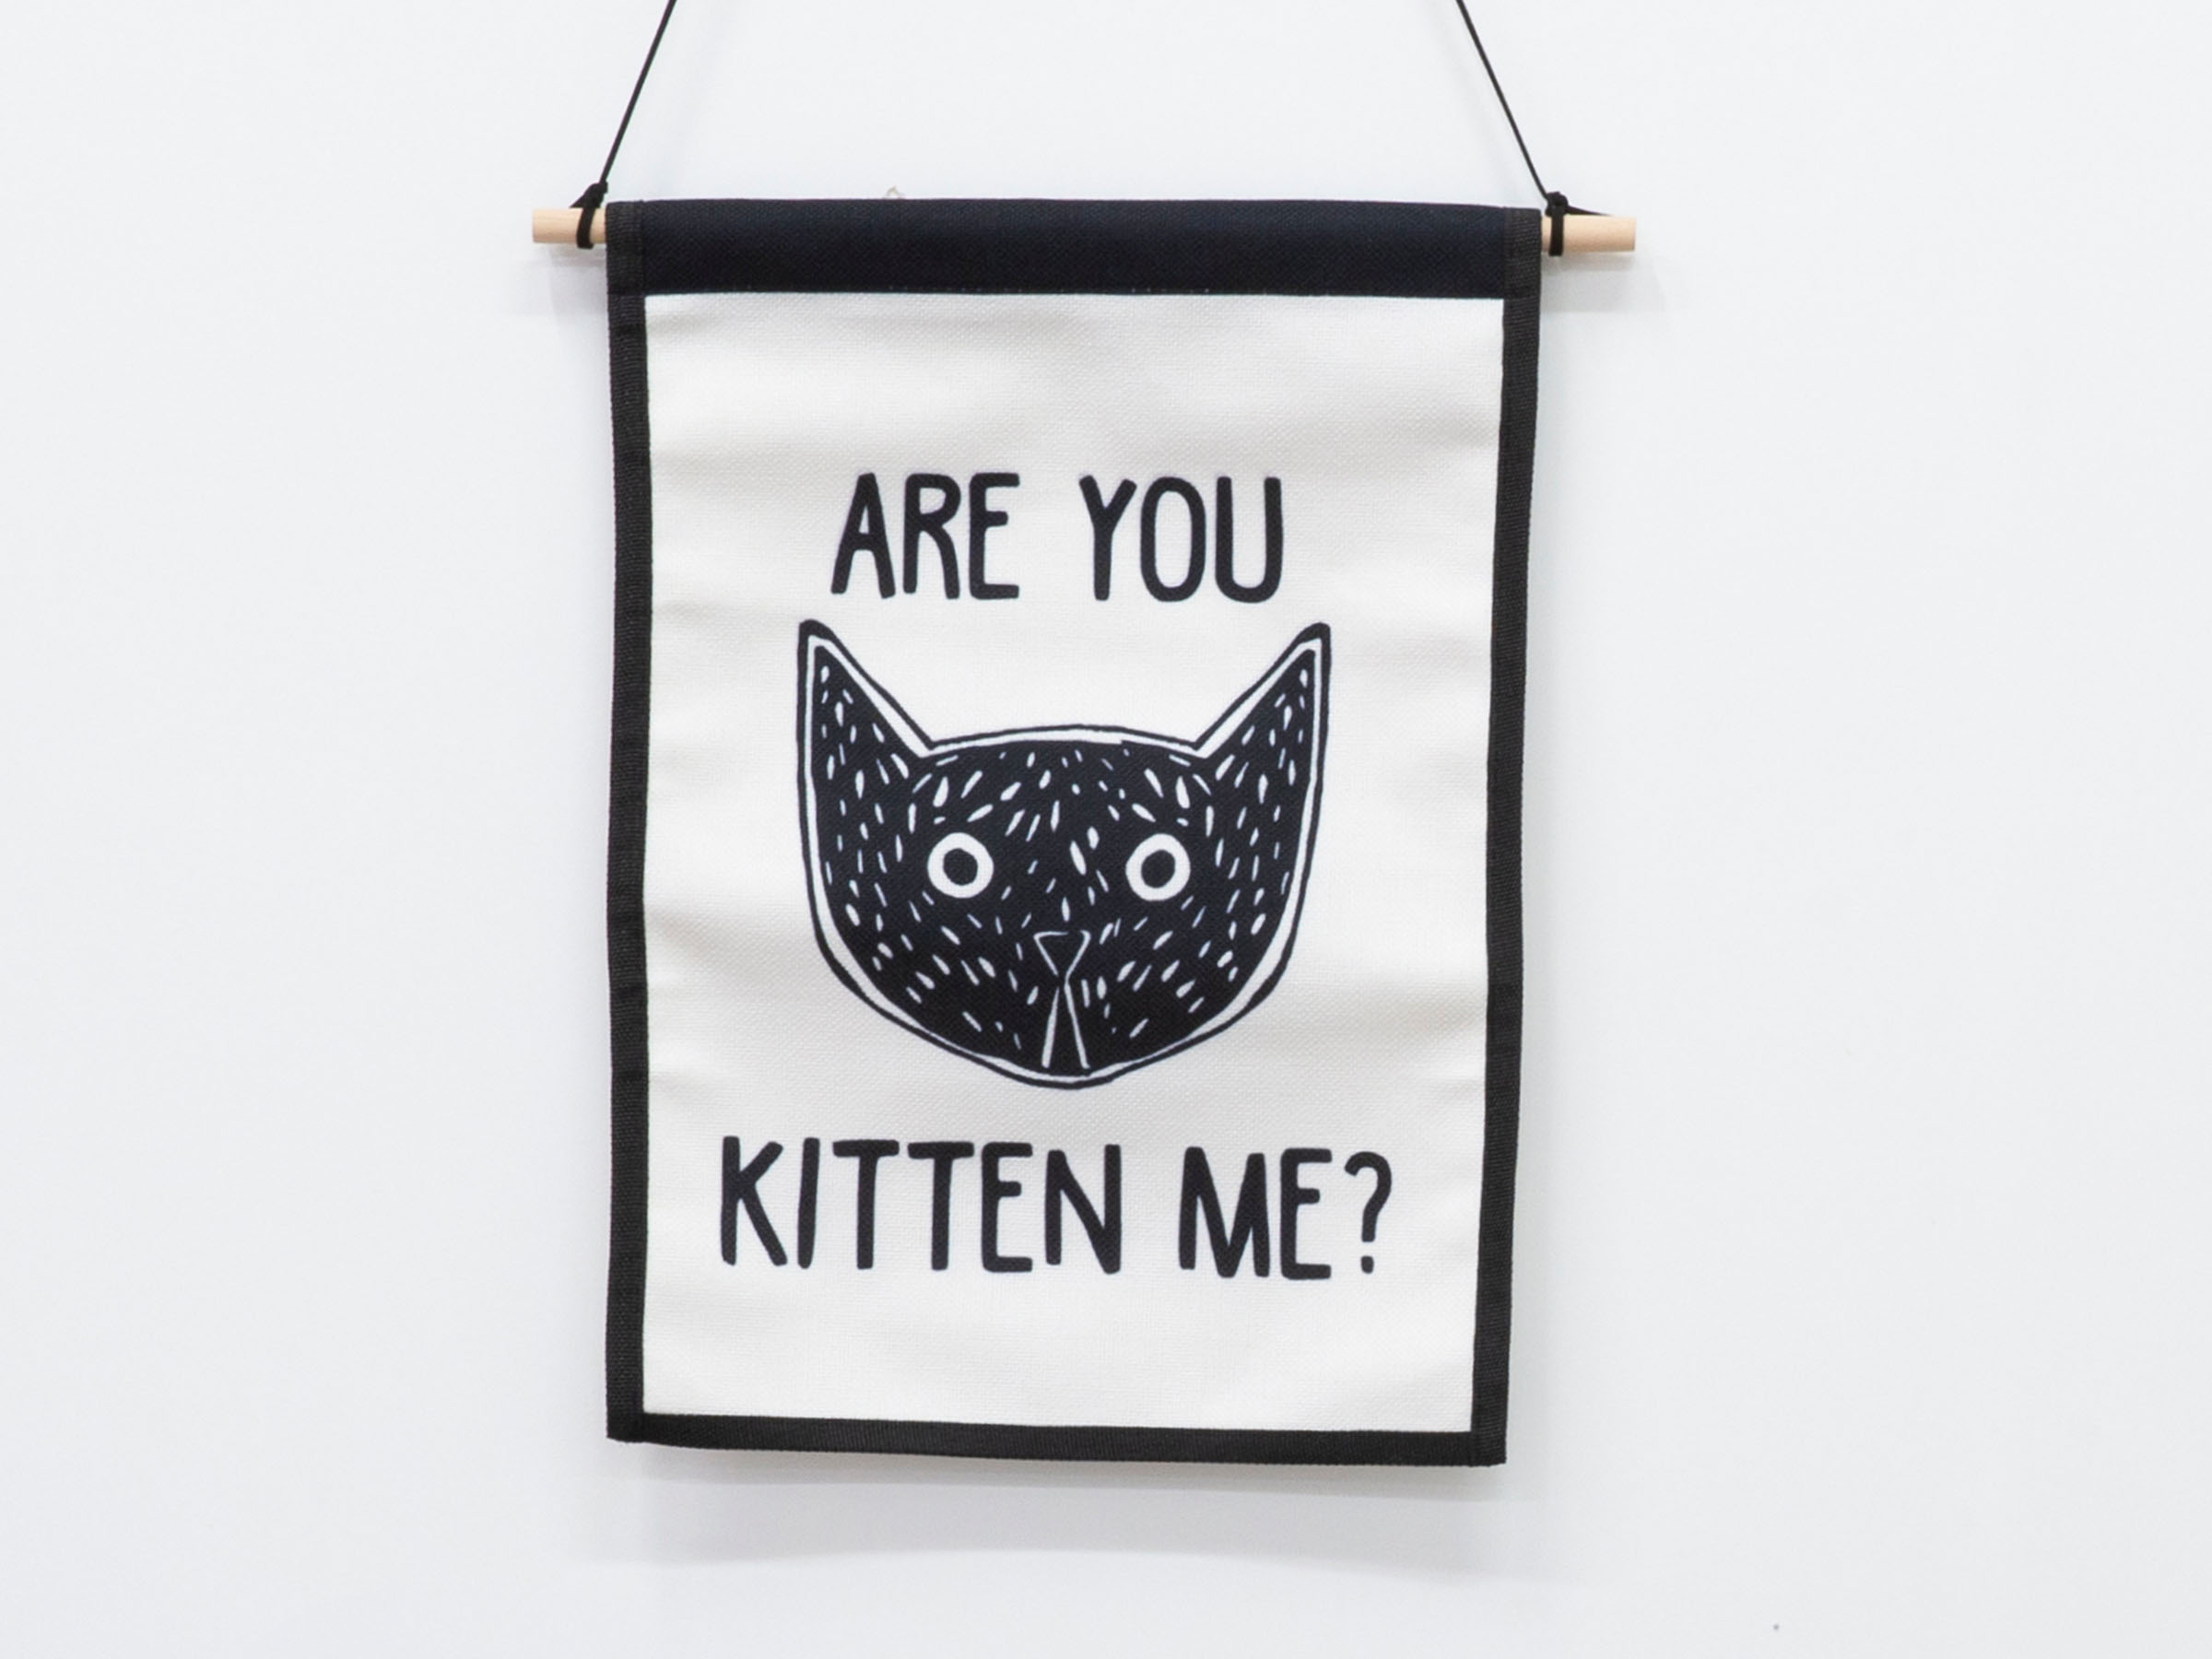 Small Wall Art Hanger - Kitten